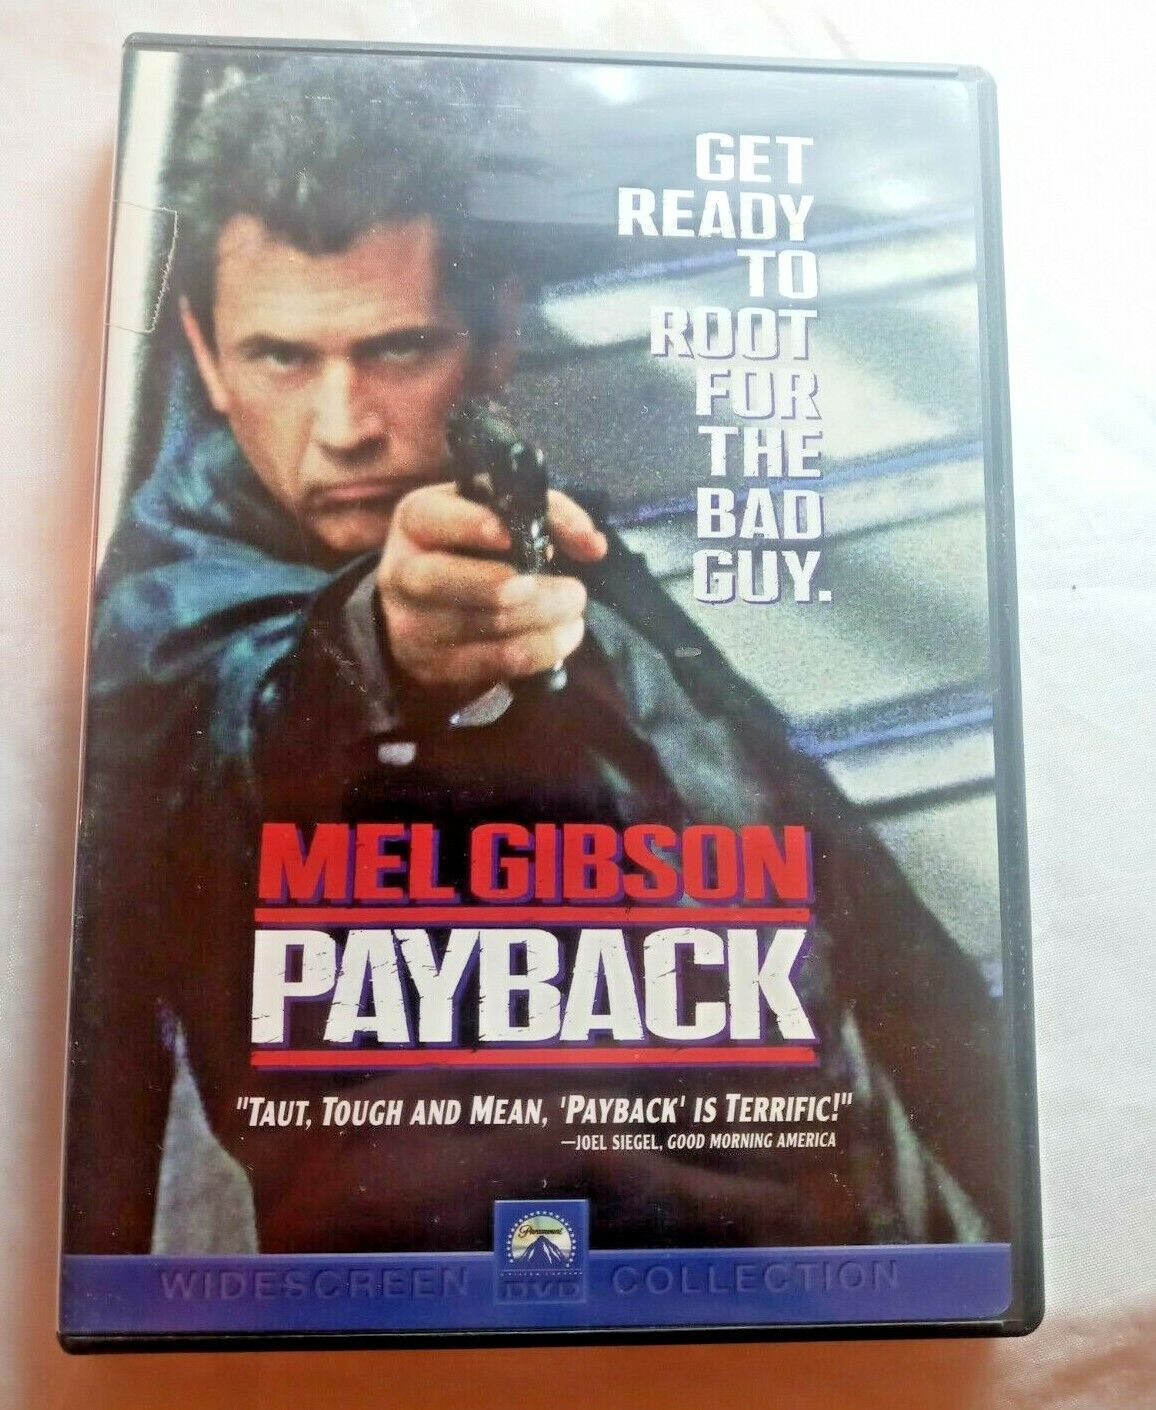 Payback DVD Widescreen 1999 Mel Gibson Complete With Insert - $9.99